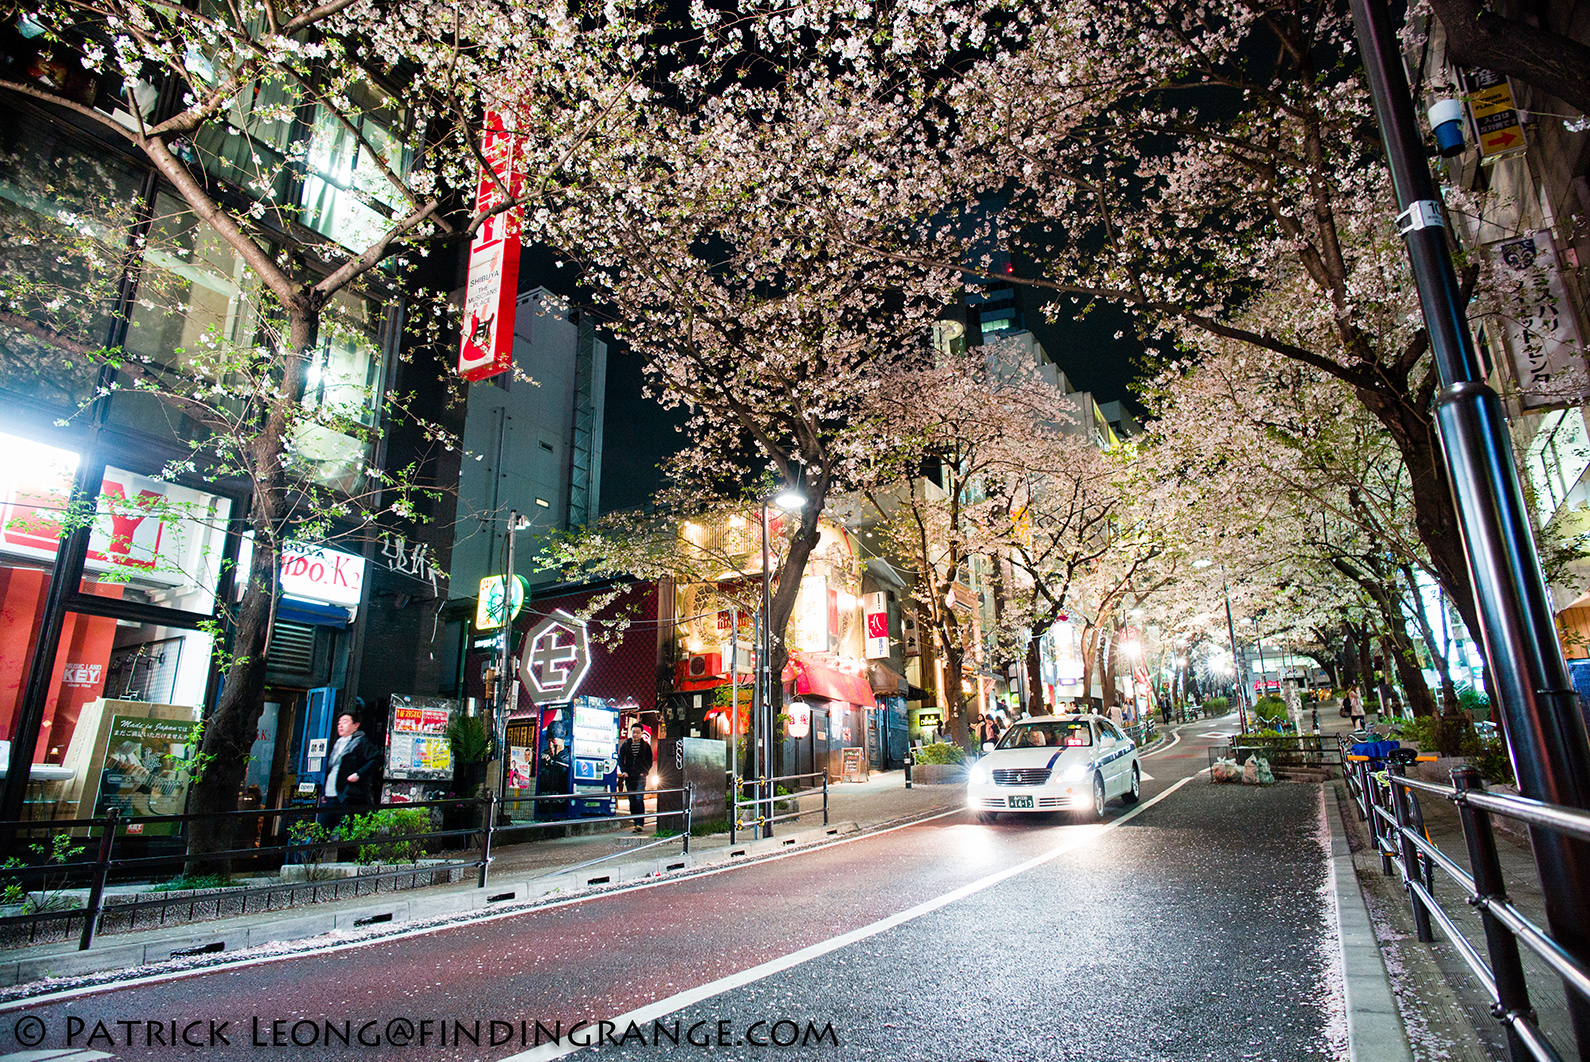 http://findingrange.com/wp-content/uploads/2015/04/Leica-M-Typ-240-21mm-Summilux-ASPH-Shibuya-Tokyo-Japan-Street-Candid-Cherry-Blossoms.jpg